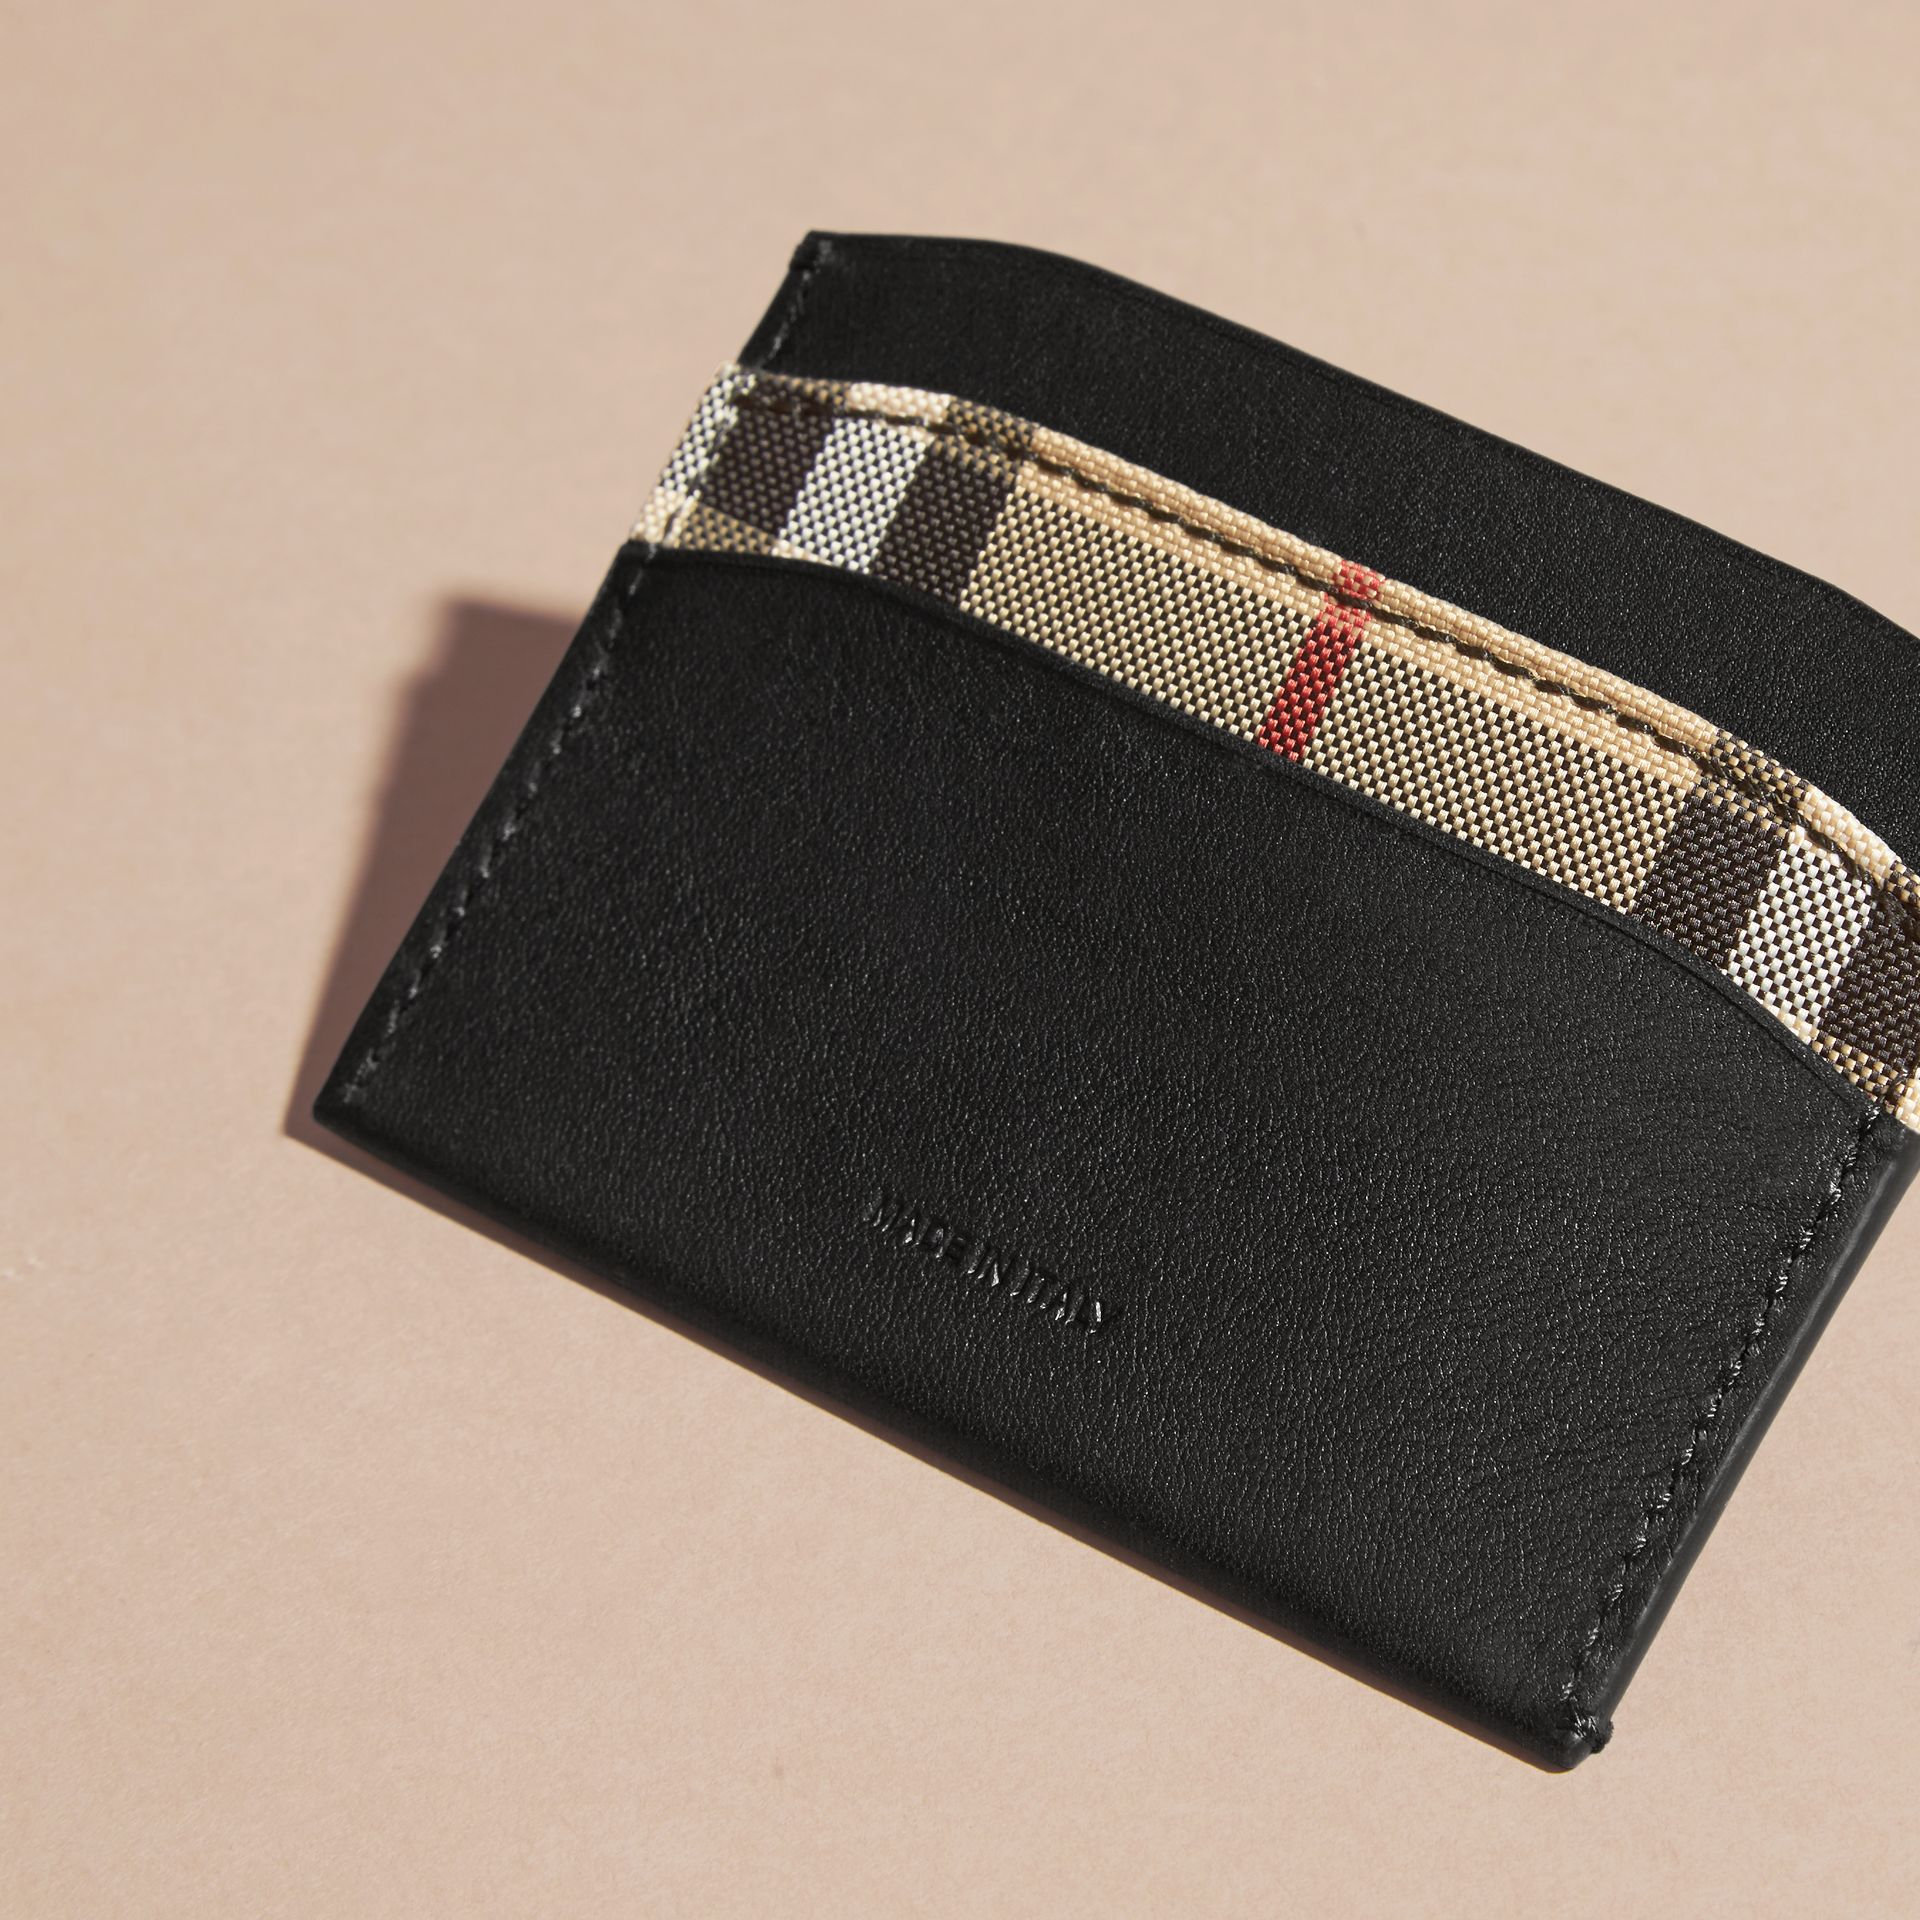 Check and Leather Card Case in Black - Women | Burberry United Kingdom - gallery image 2